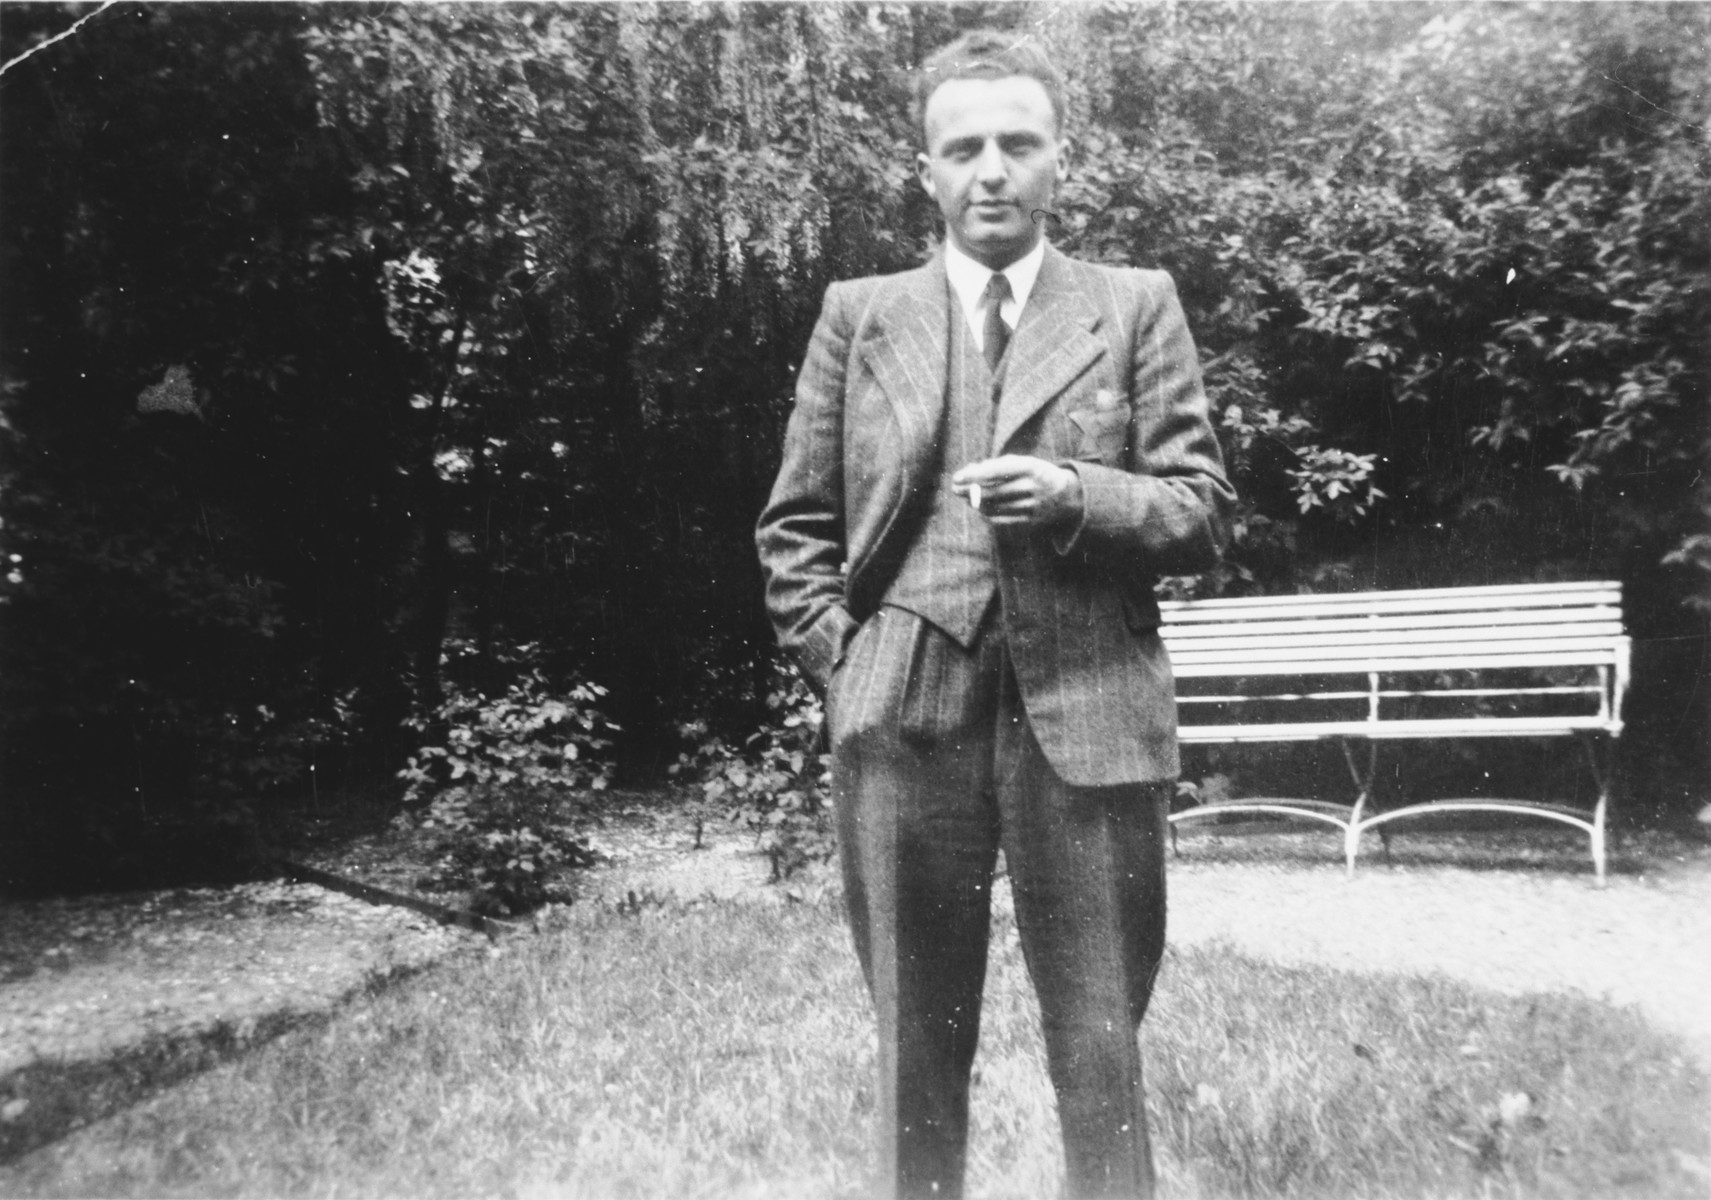 A Jewish Dutch man wearing a Star of David poses outdoors with a cigarette in his hand.  Pictured is David Van Gelder.